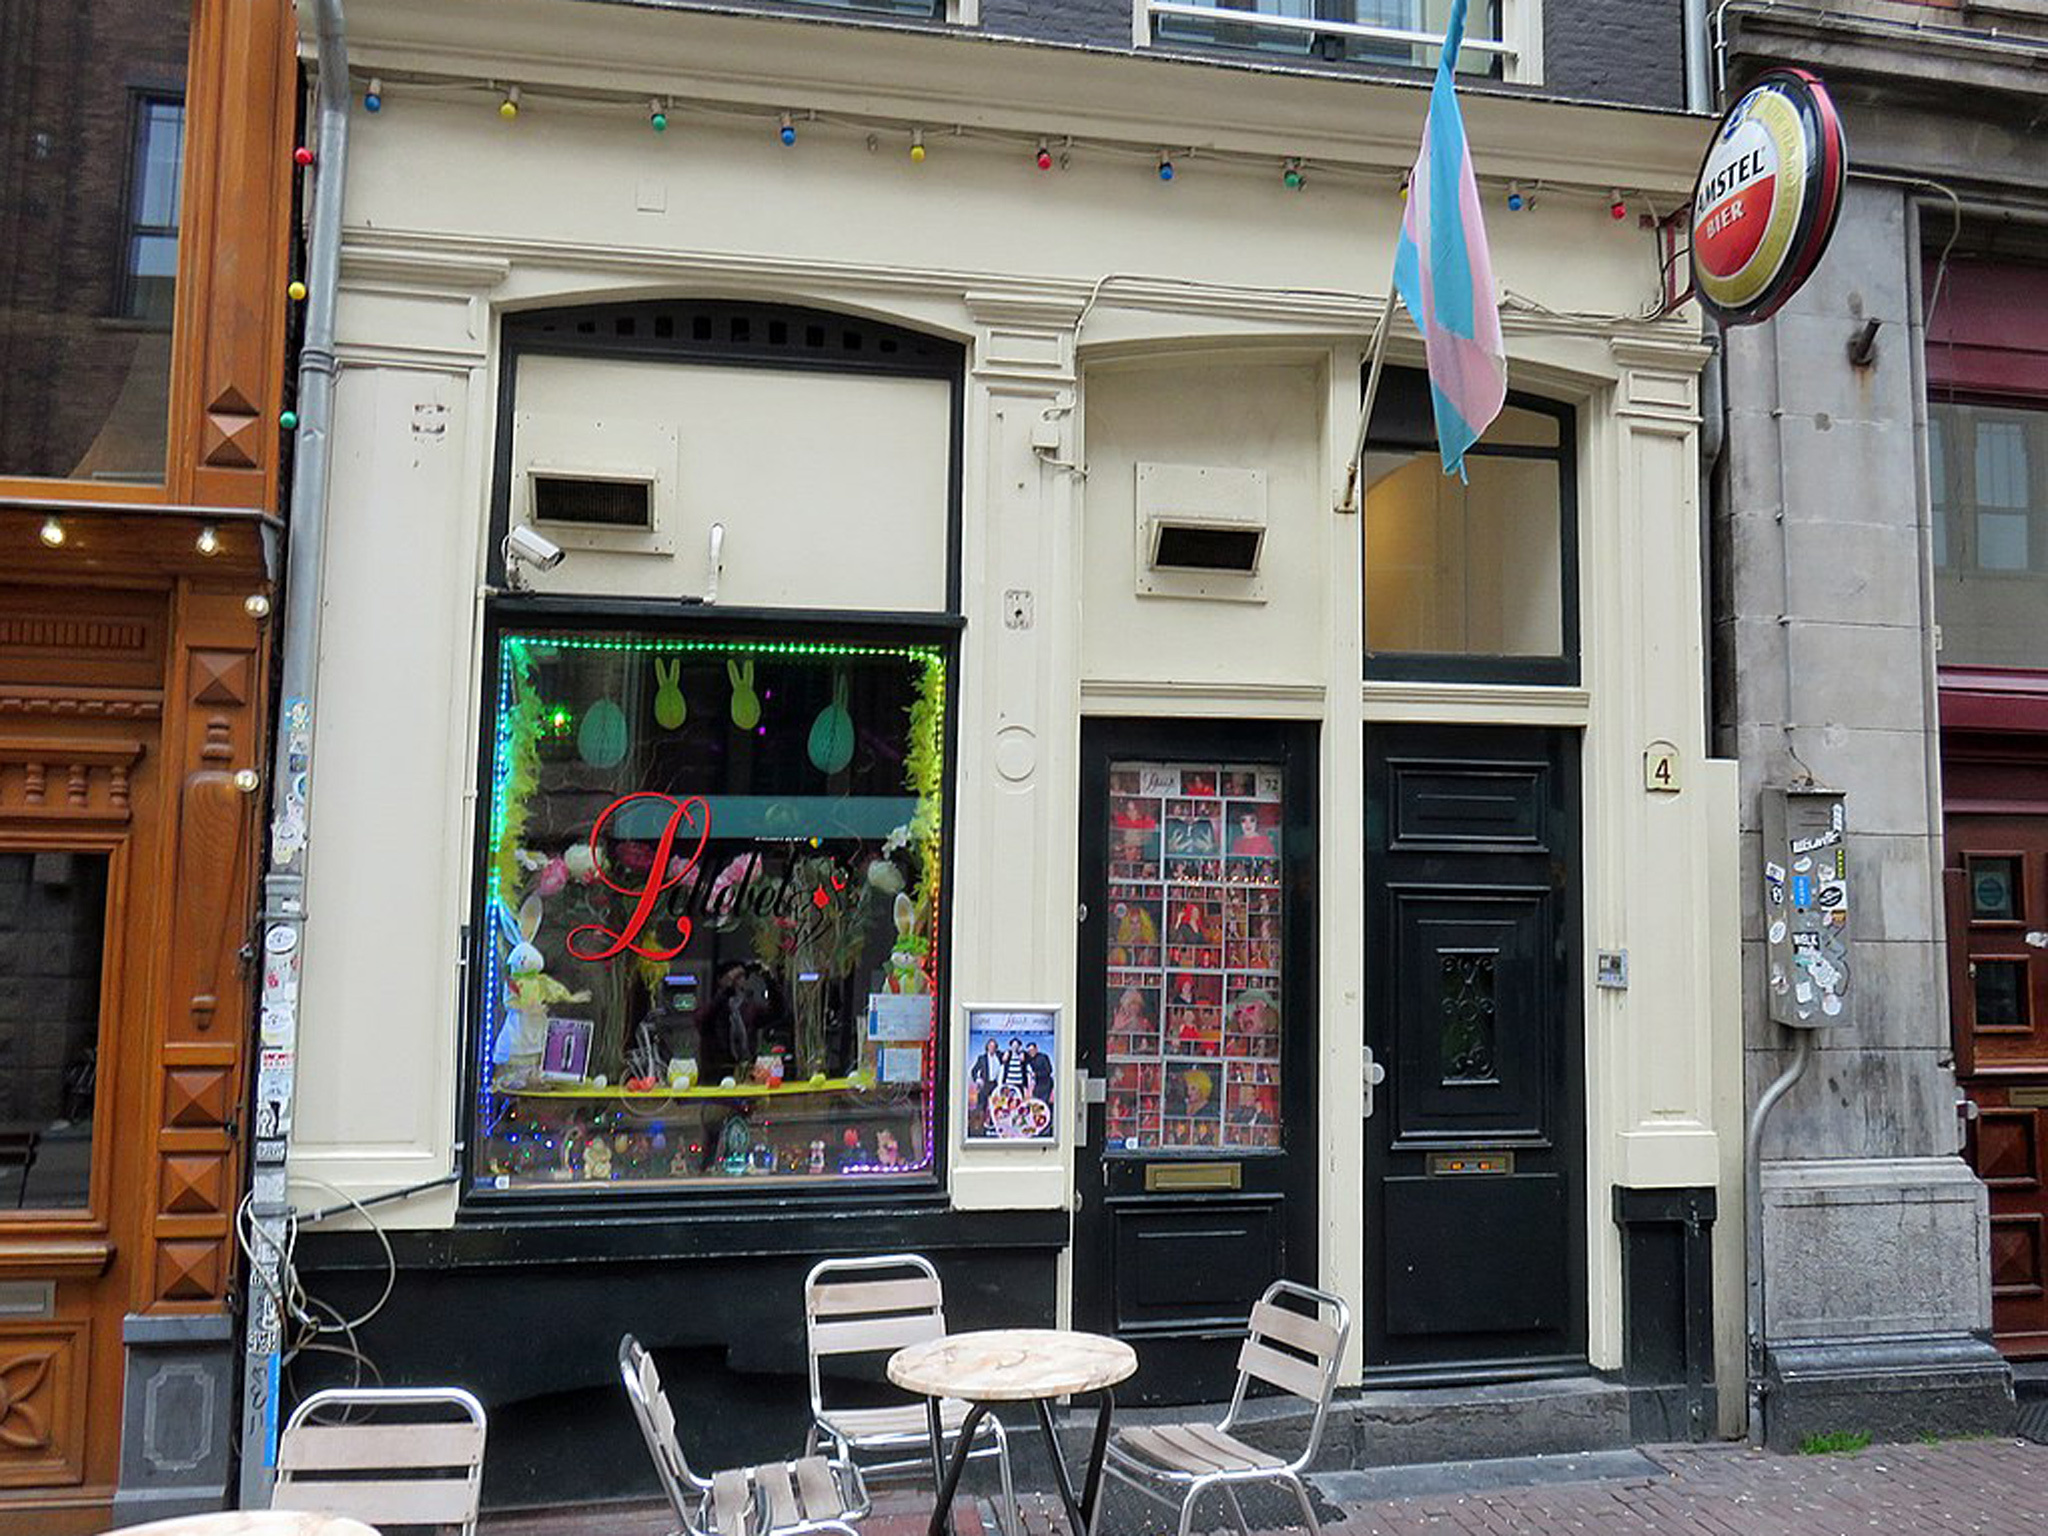 The exterior of drag club De Lellebel in Amsterdam